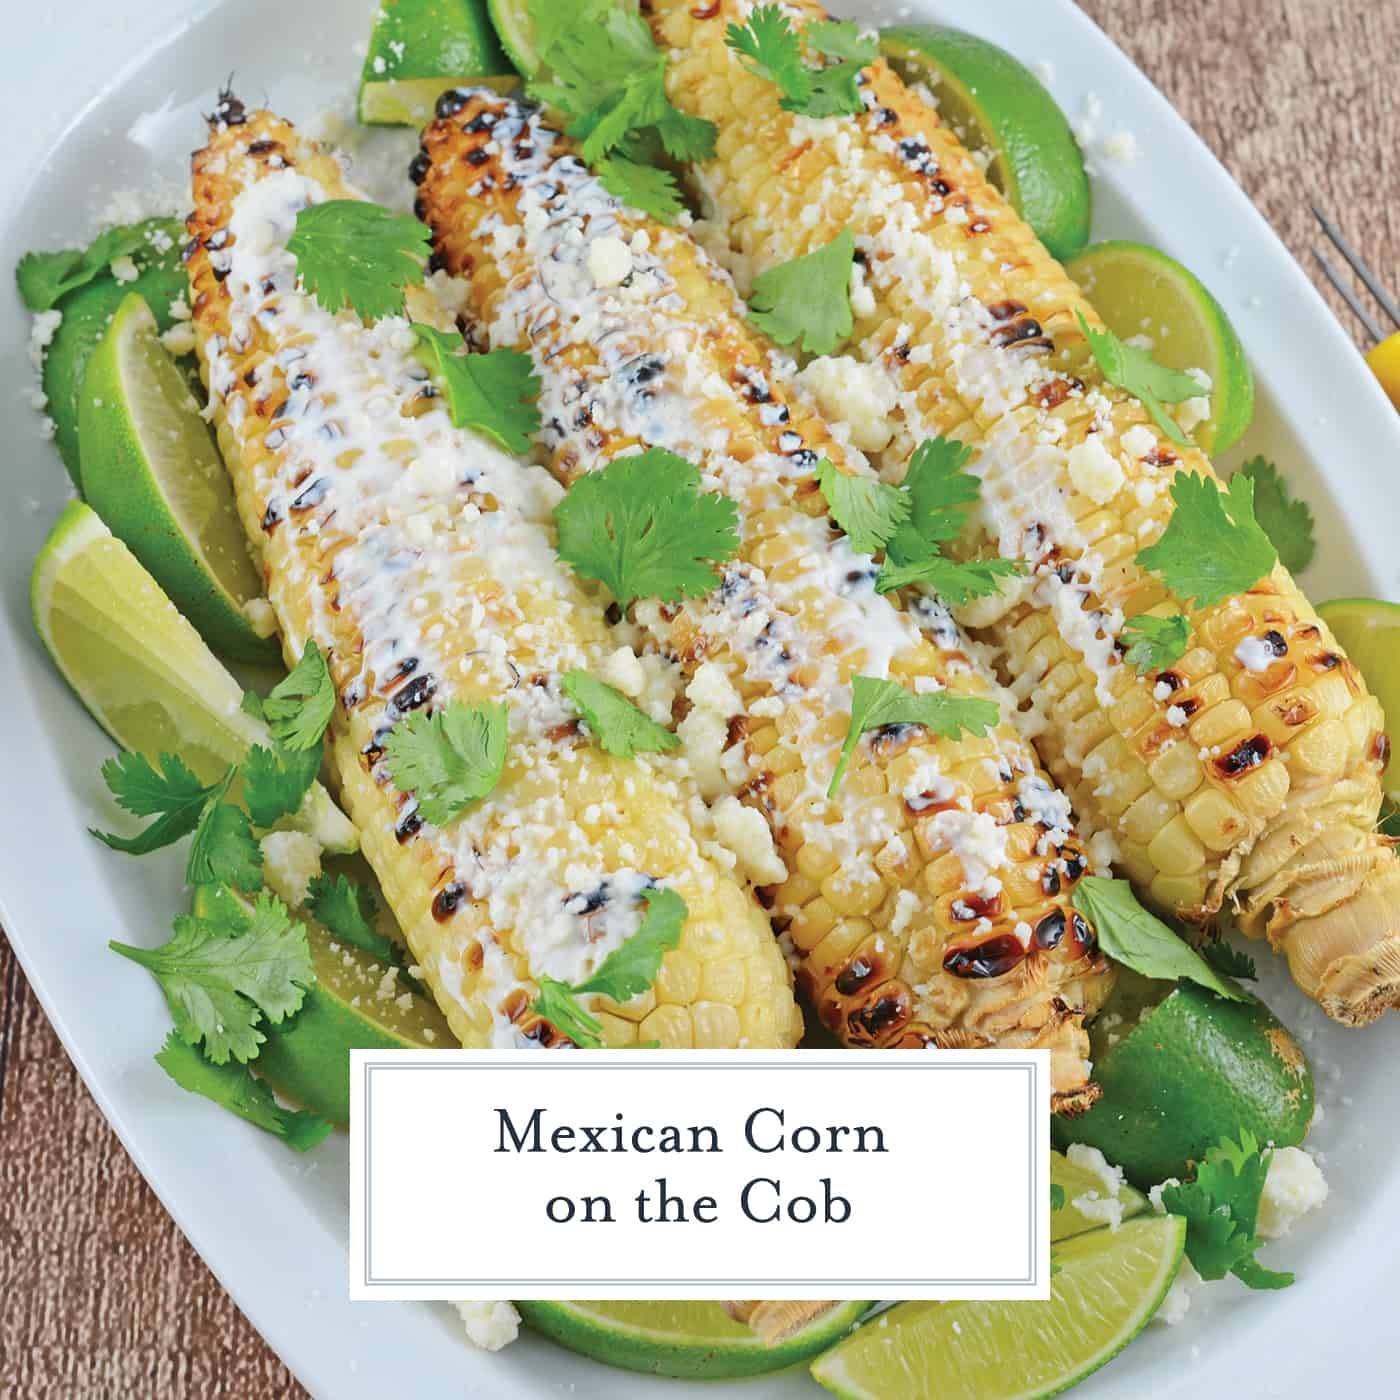 Mexican Corn on the Cob is one of the best, grilled corn recipes out there. Served as a side, it is a great way to spice up any BBQ.  #elote #mexicancorn #cornonthecob www.savoryexperiments.com